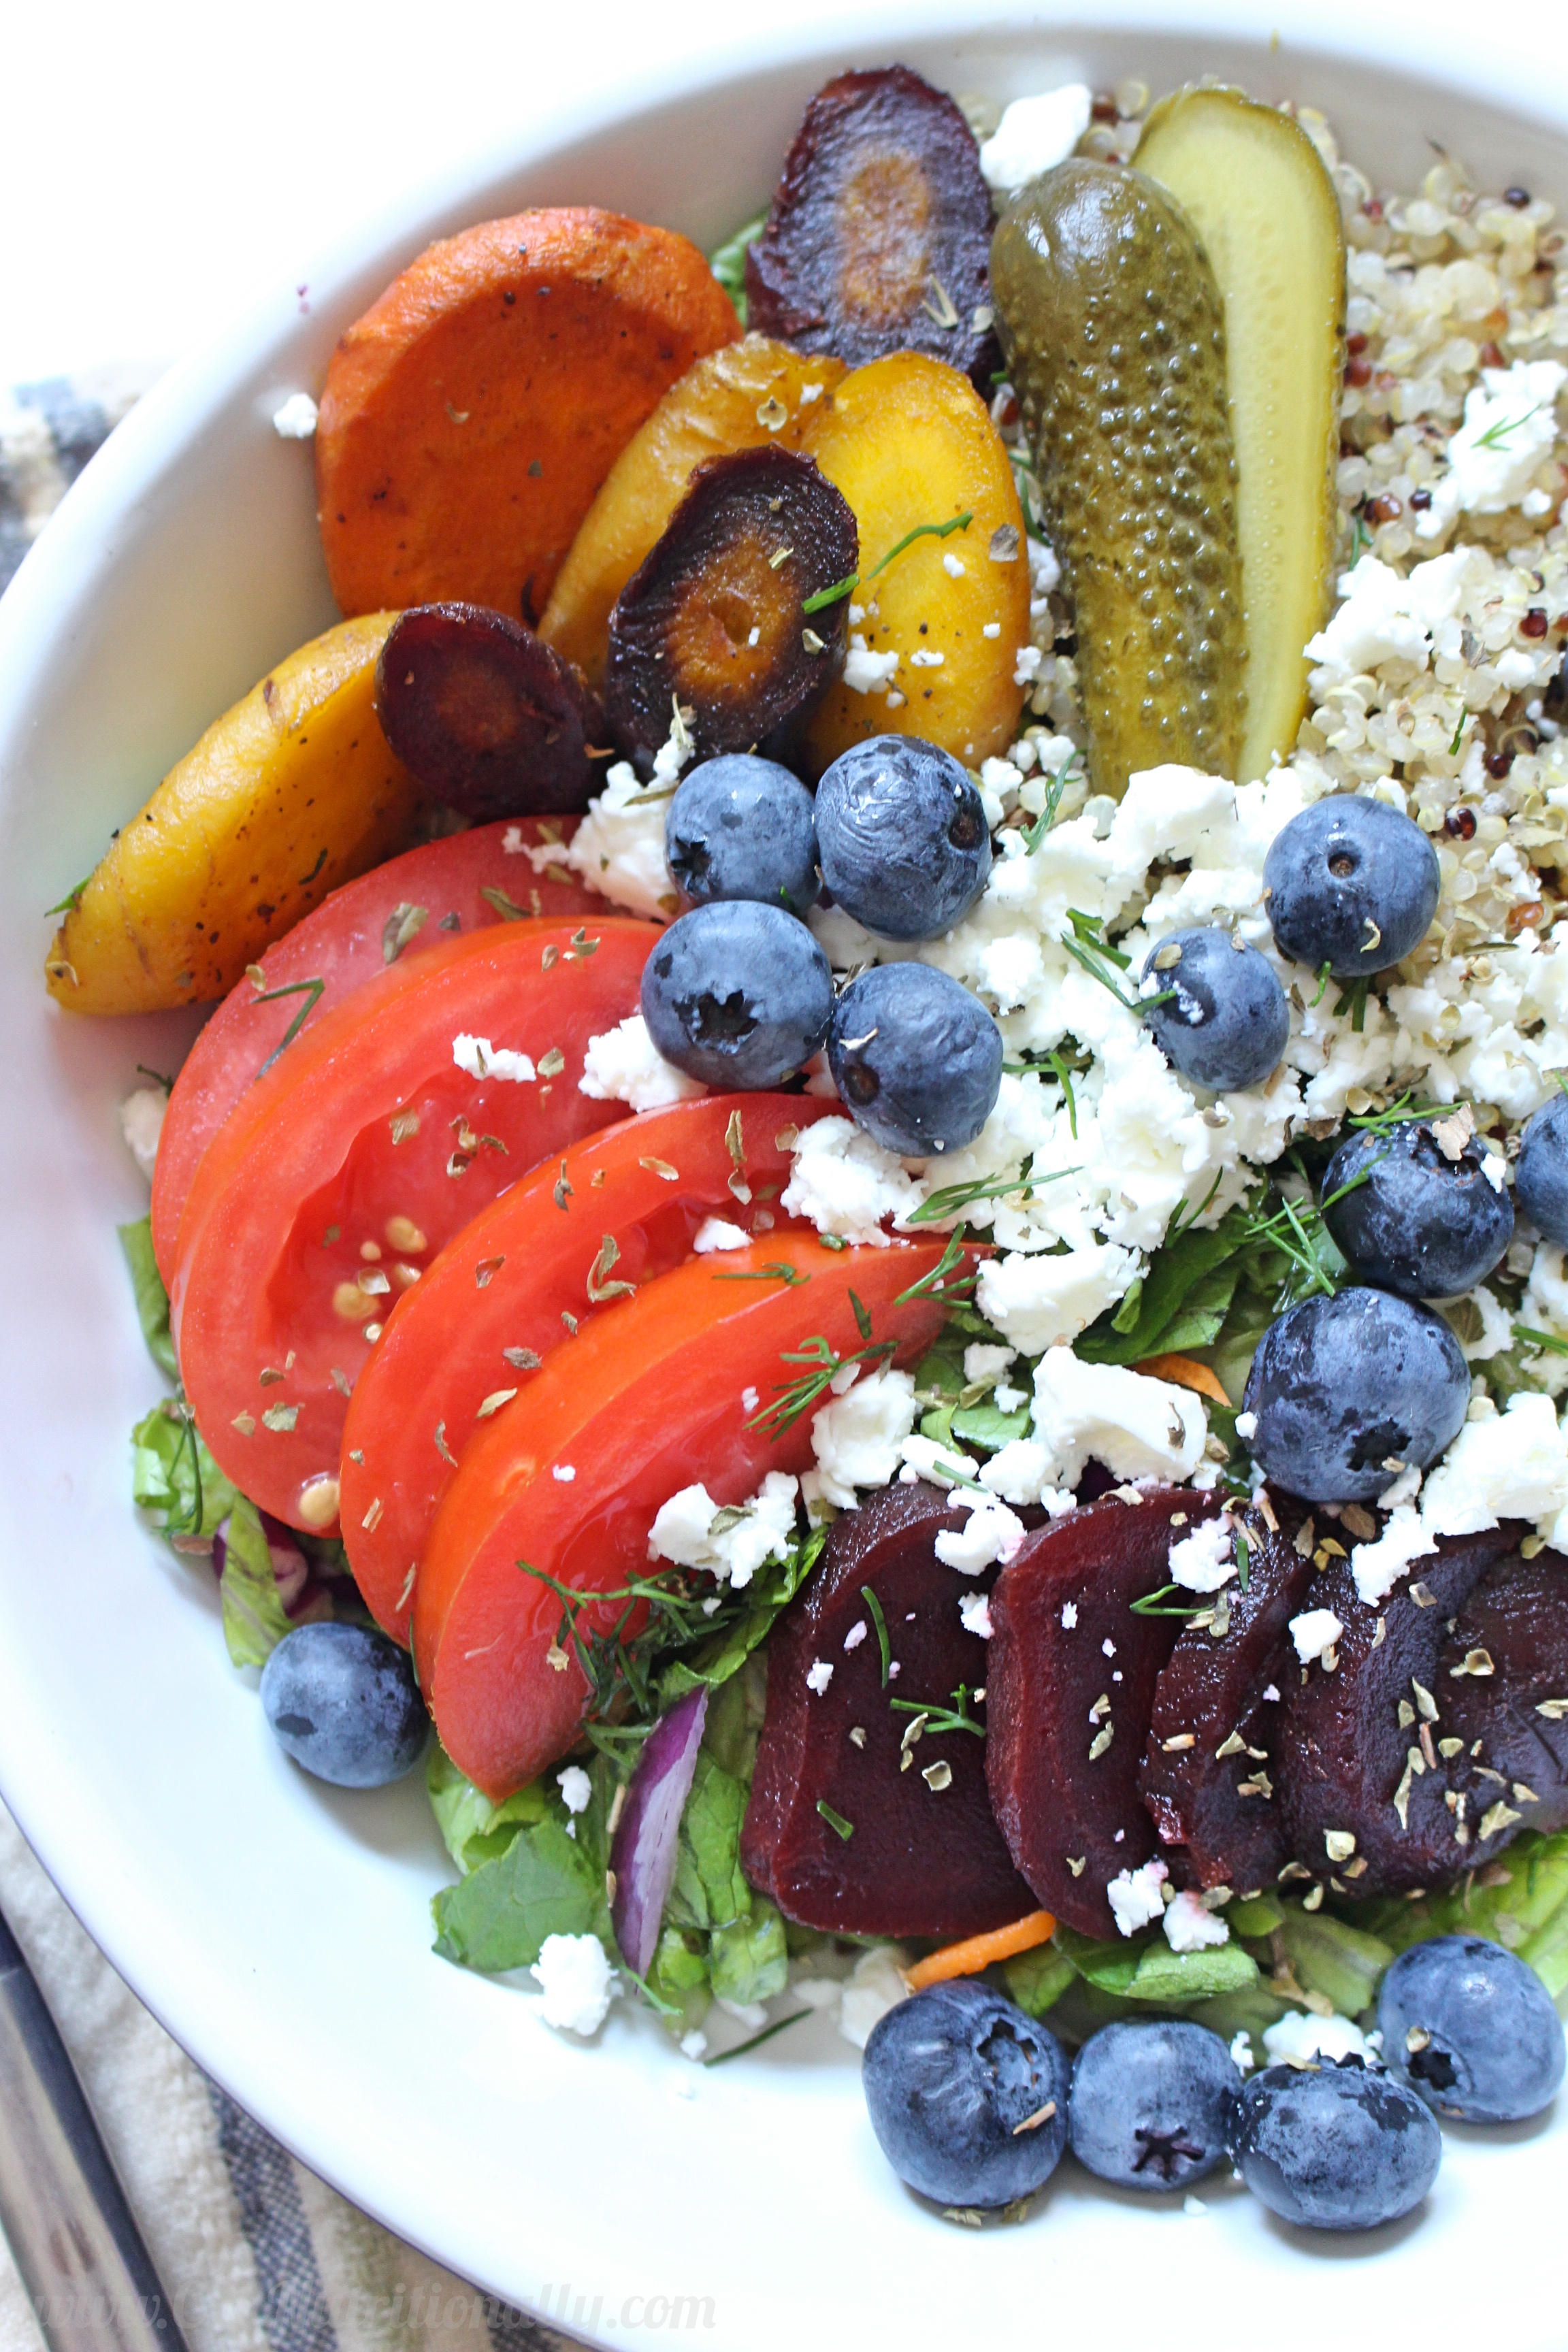 Late Summer Roasted Greek Salad Quinoa Bowl for One | C it Nutritionally